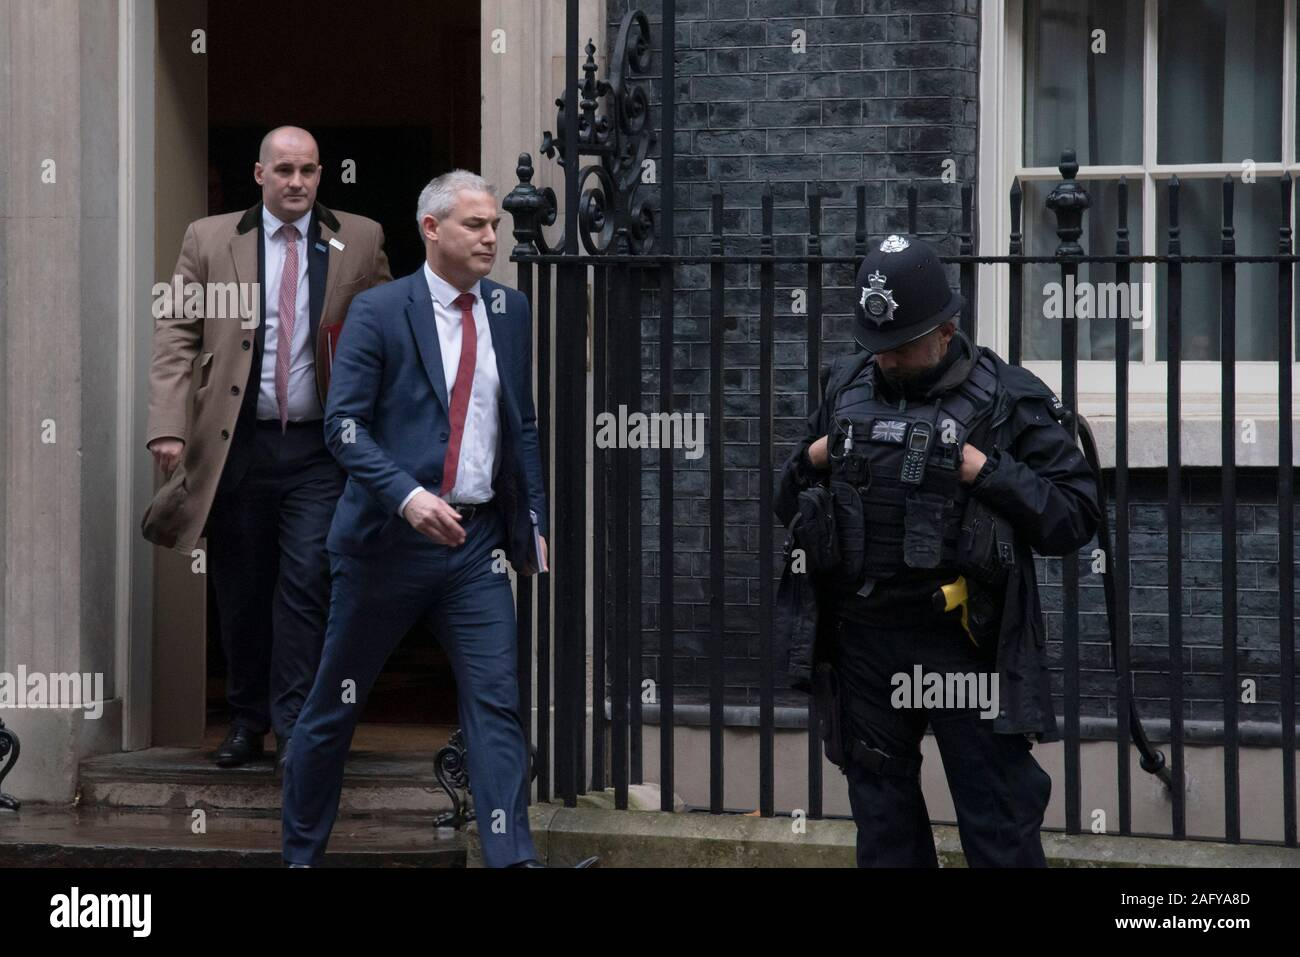 London, UK. 16th Dec, 2019.  Jake Berry, Minister for the Northern Power House  and Steve Barclay, Brexit Secretary leaving Downing Street following a cabinet meeting.  Claire Doherty/Alamy Live News Stock Photo